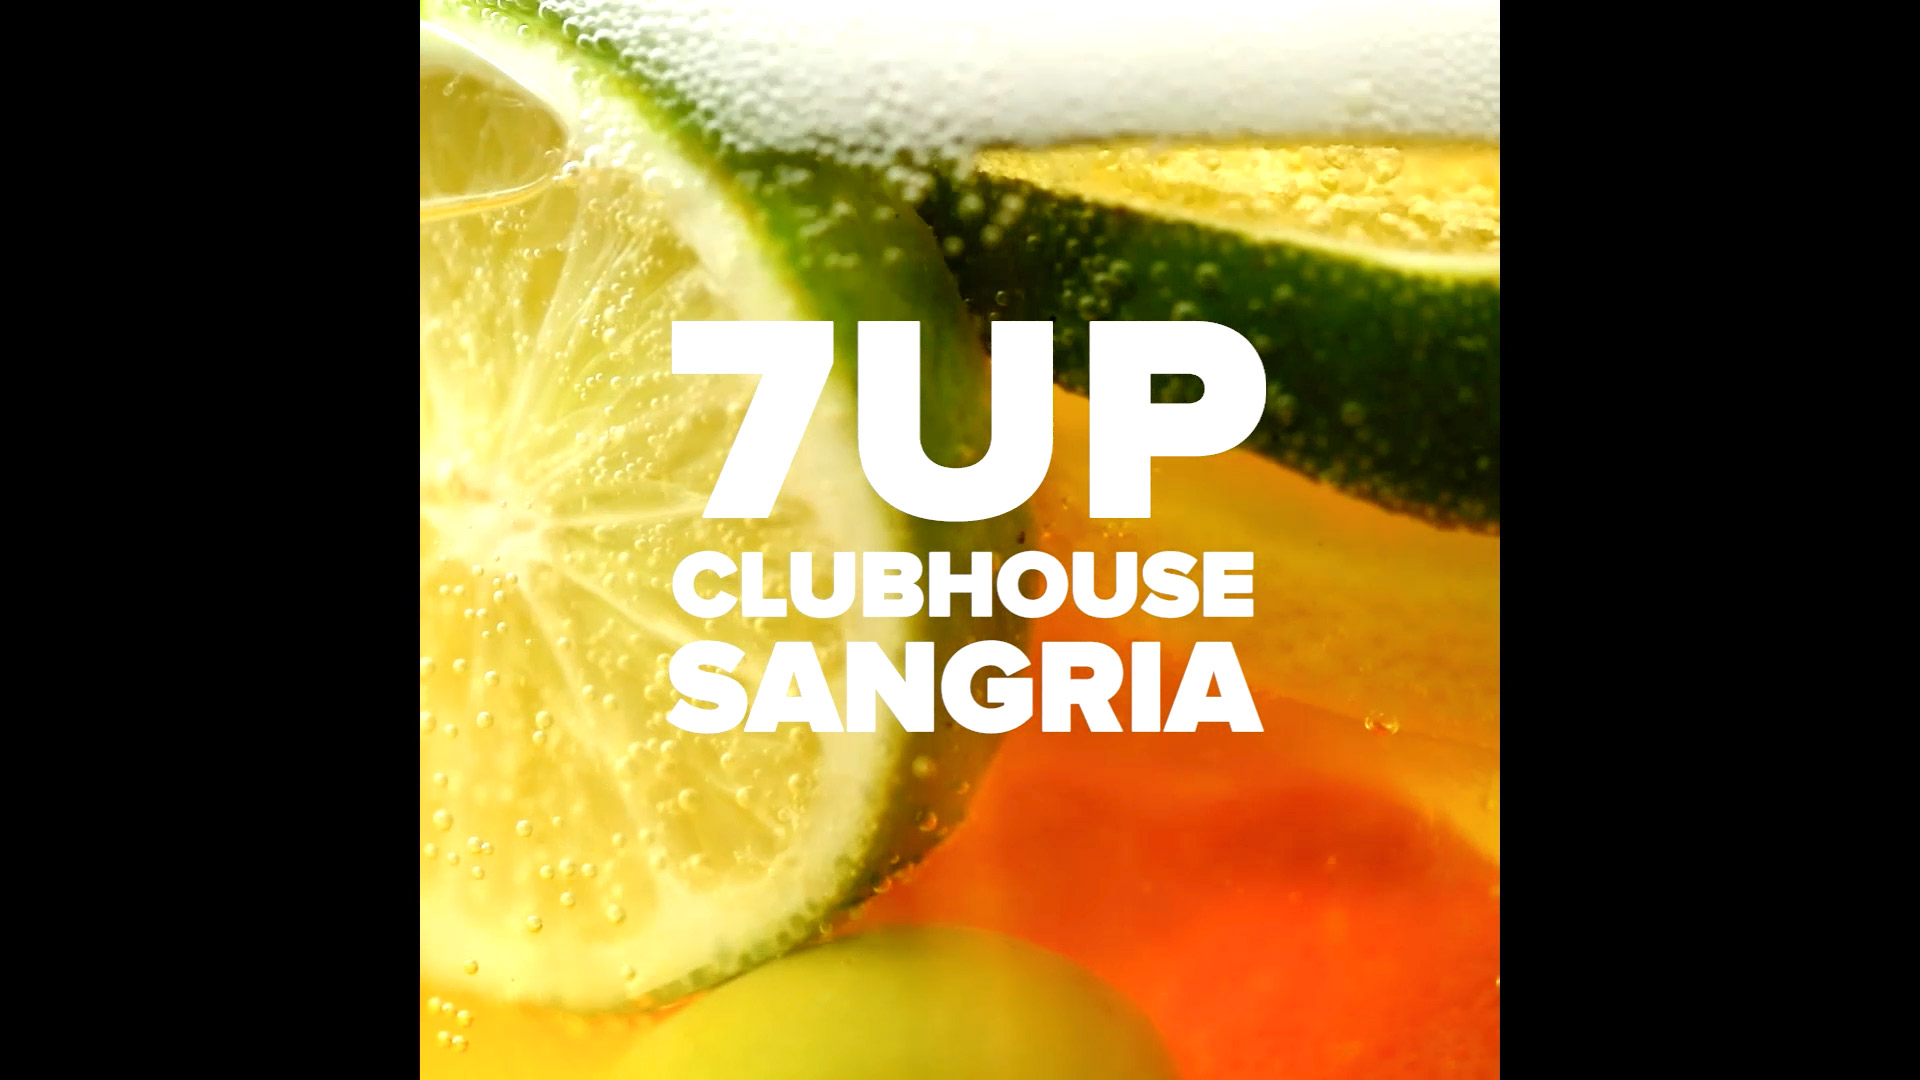 Learn How to Make a Tasty Sangria Courtesy of 7Up!